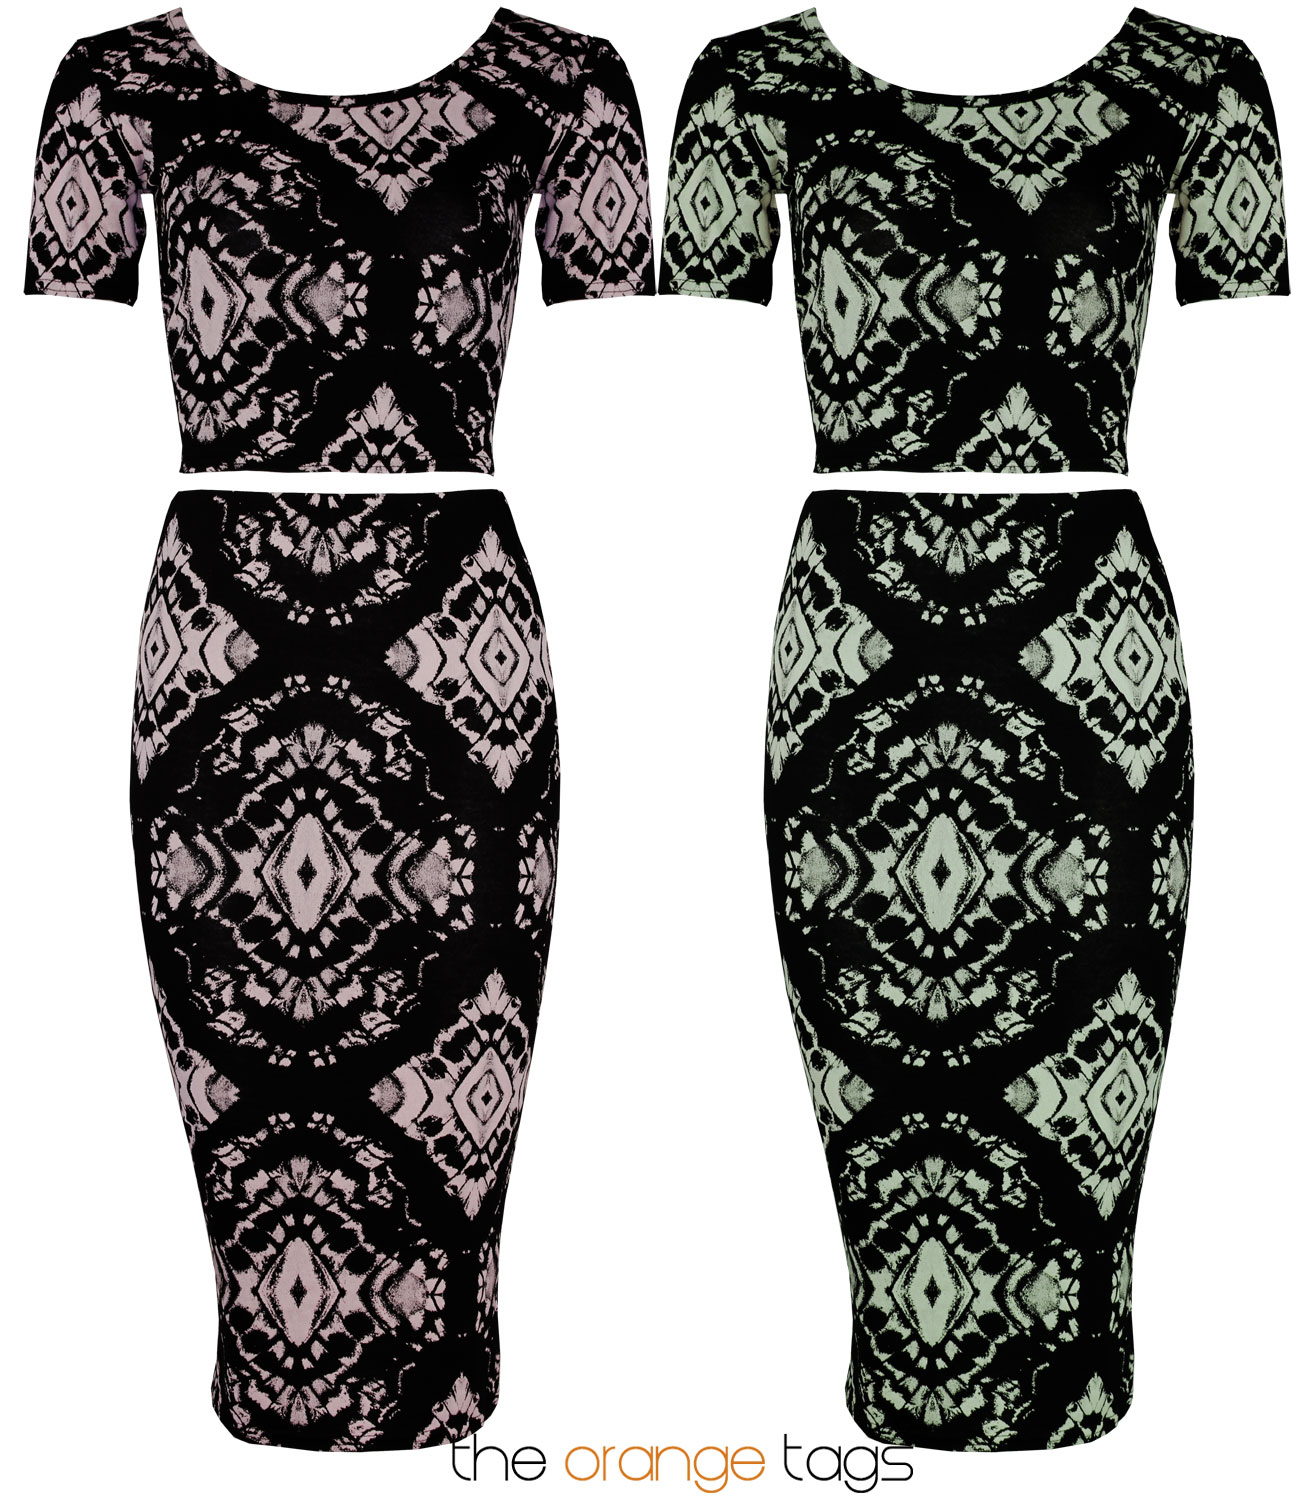 LADIES PRINTED TWO PIECE SKIRT SUIT BODYCON SKIRT CROP TOP WOMENS MIDI DRESS | eBay